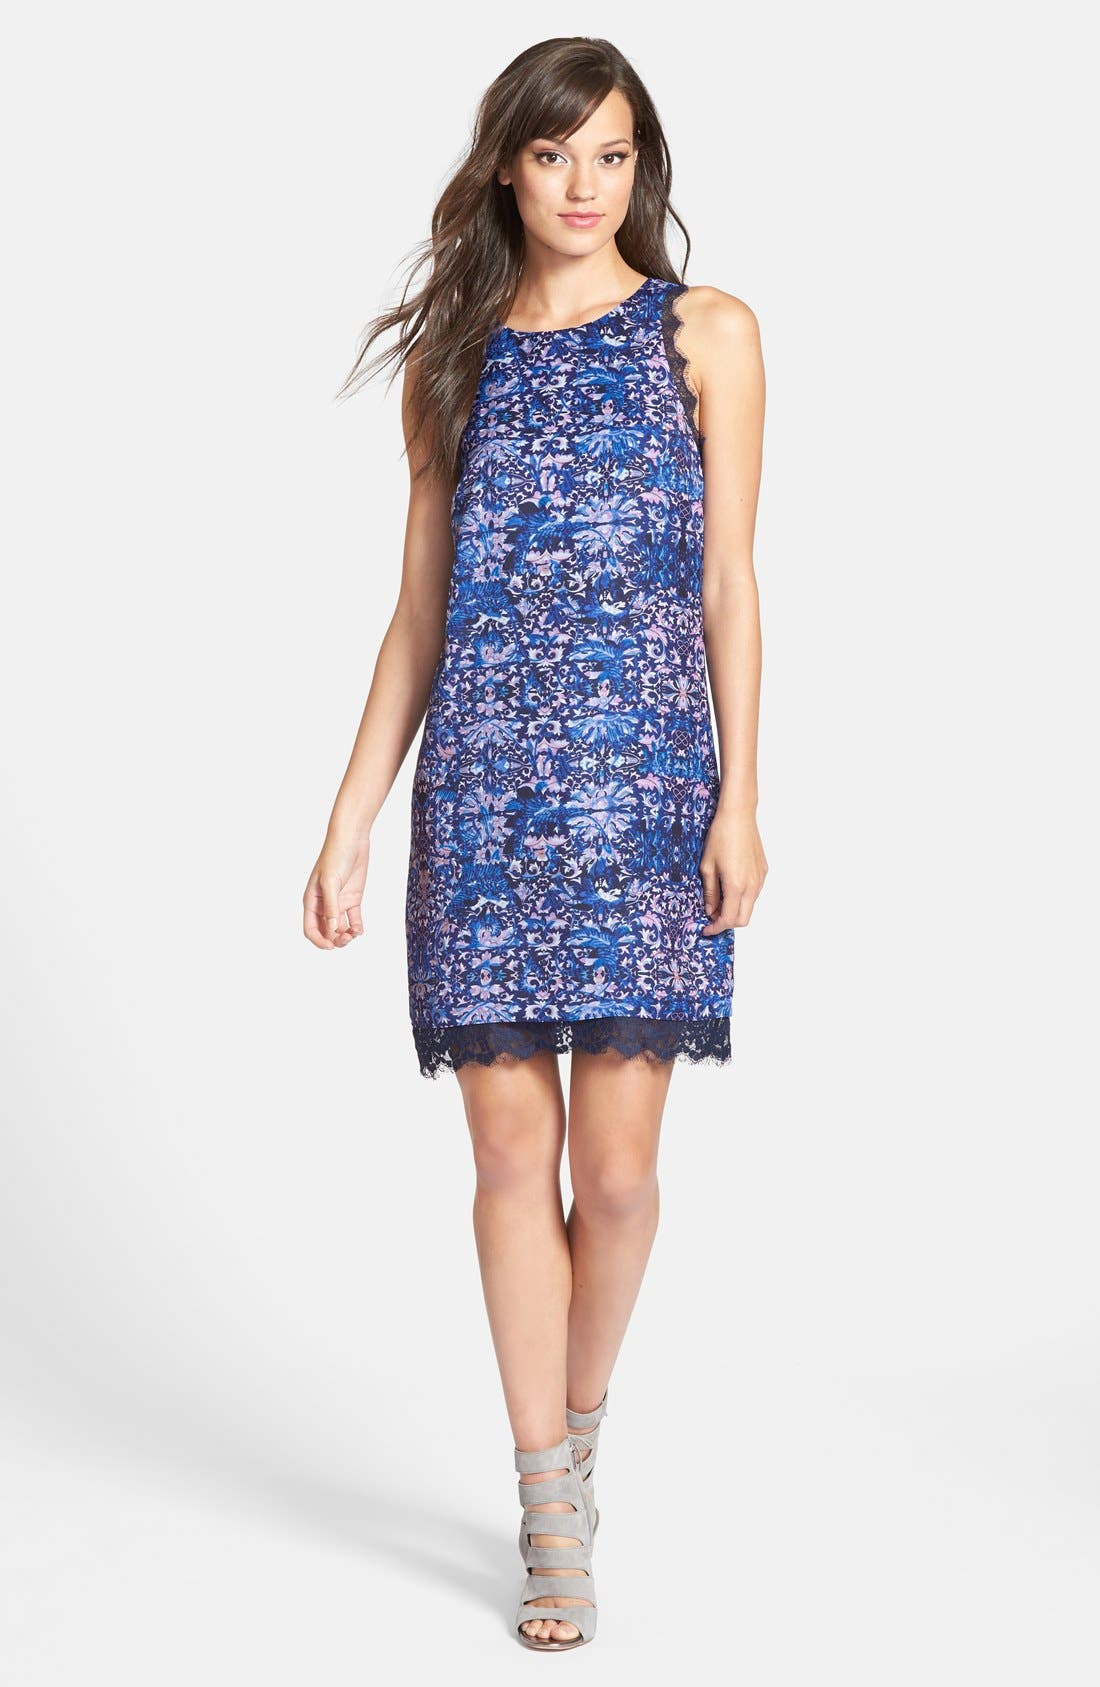 Alternate Image 1 Selected - Chelsea28 Print Lace Trim Shift Dress